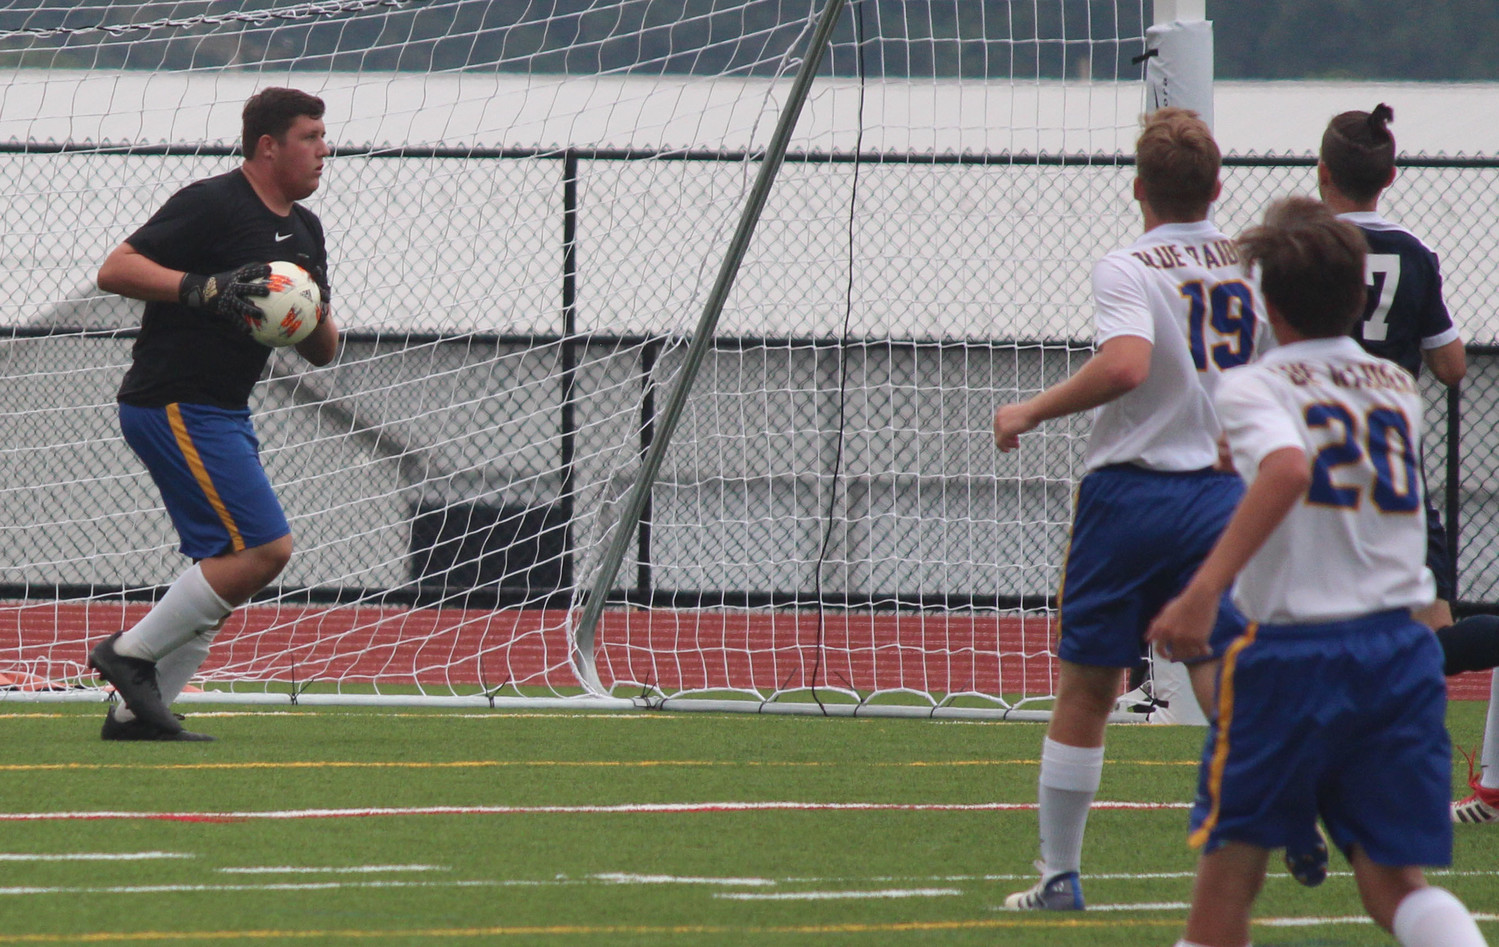 Dane Ebersole makes a save Sept. 1 vs. Wyomissing.